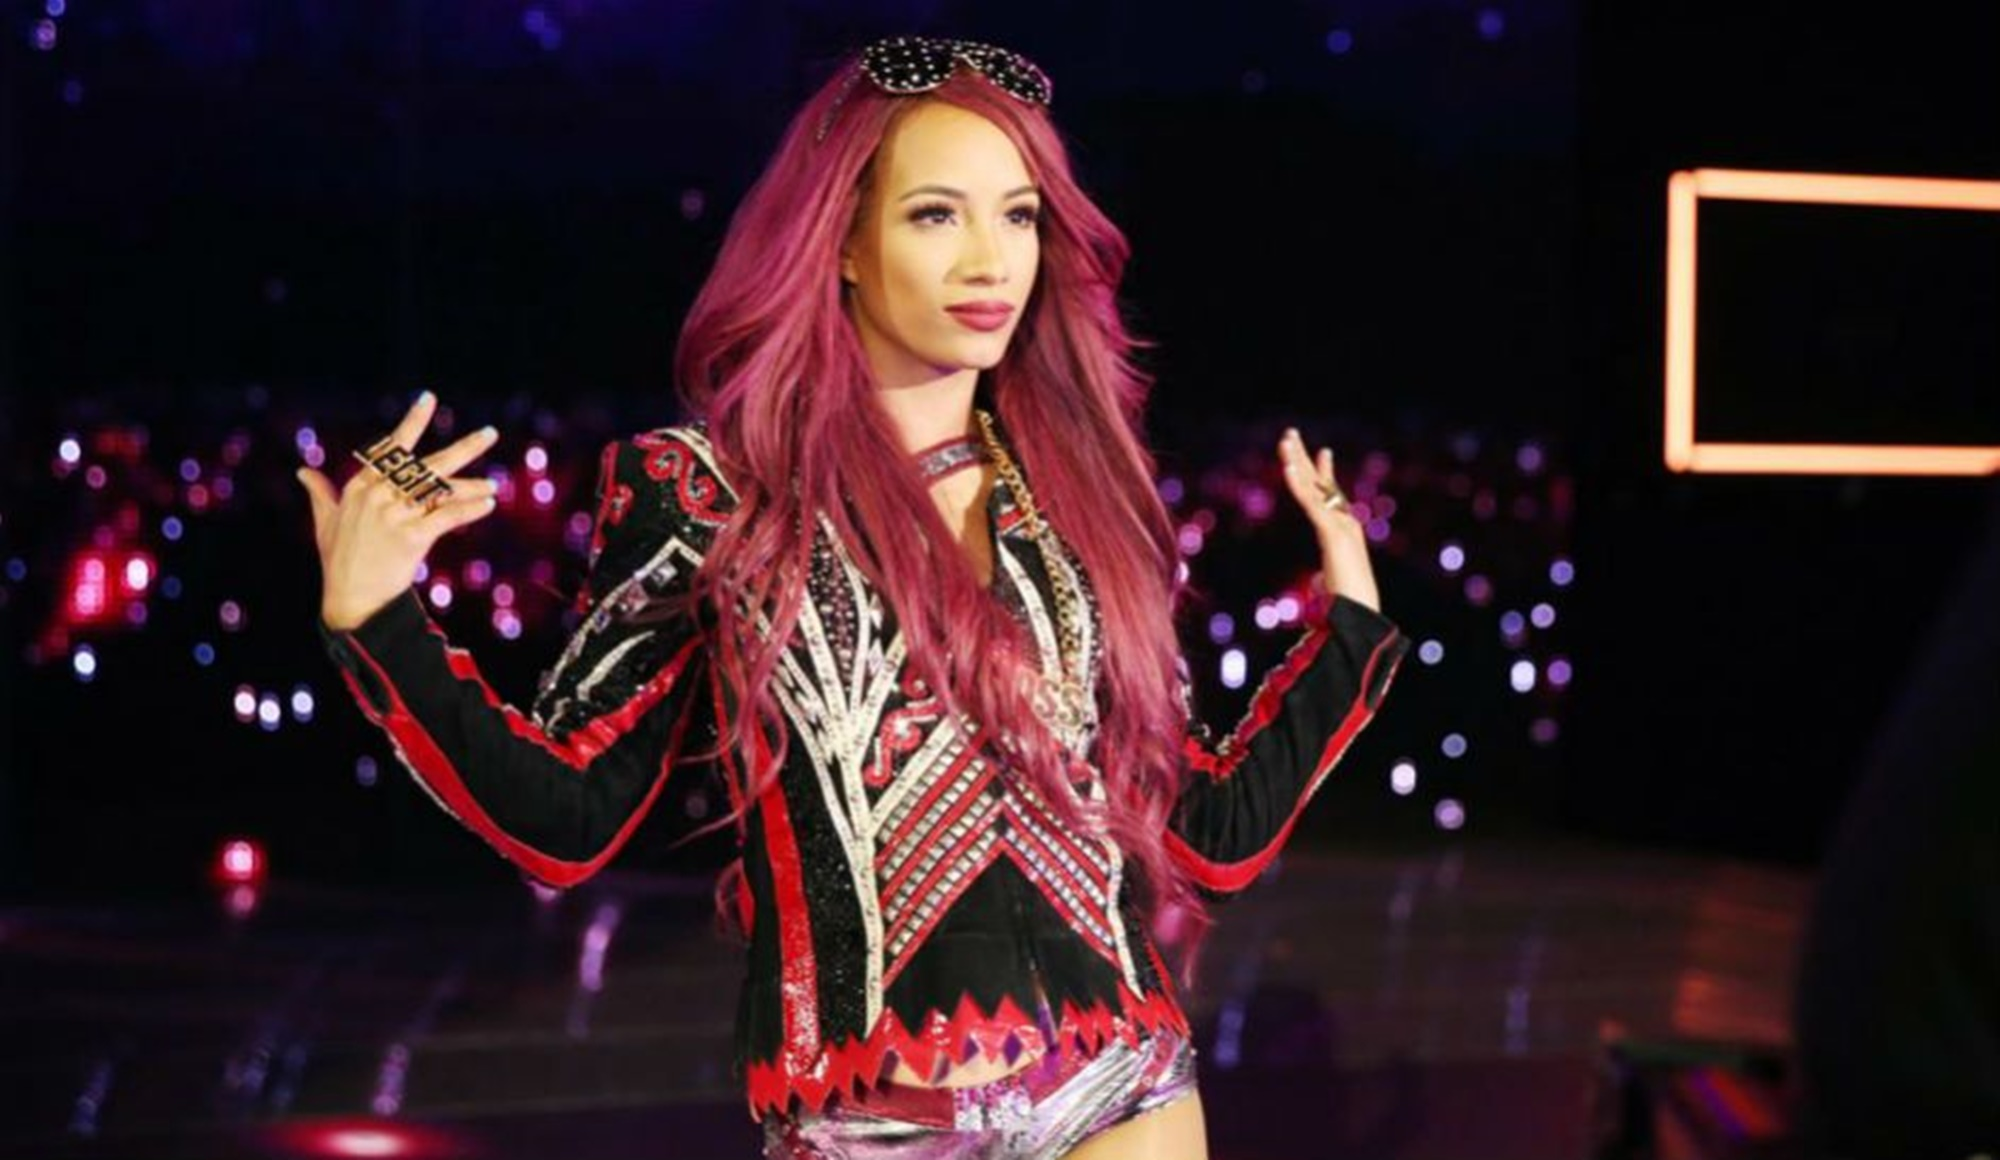 sasha-banks-skips-wendy-williams-show-for-personal-reasons-is-this-linked-to-her-future-at-the-wwe